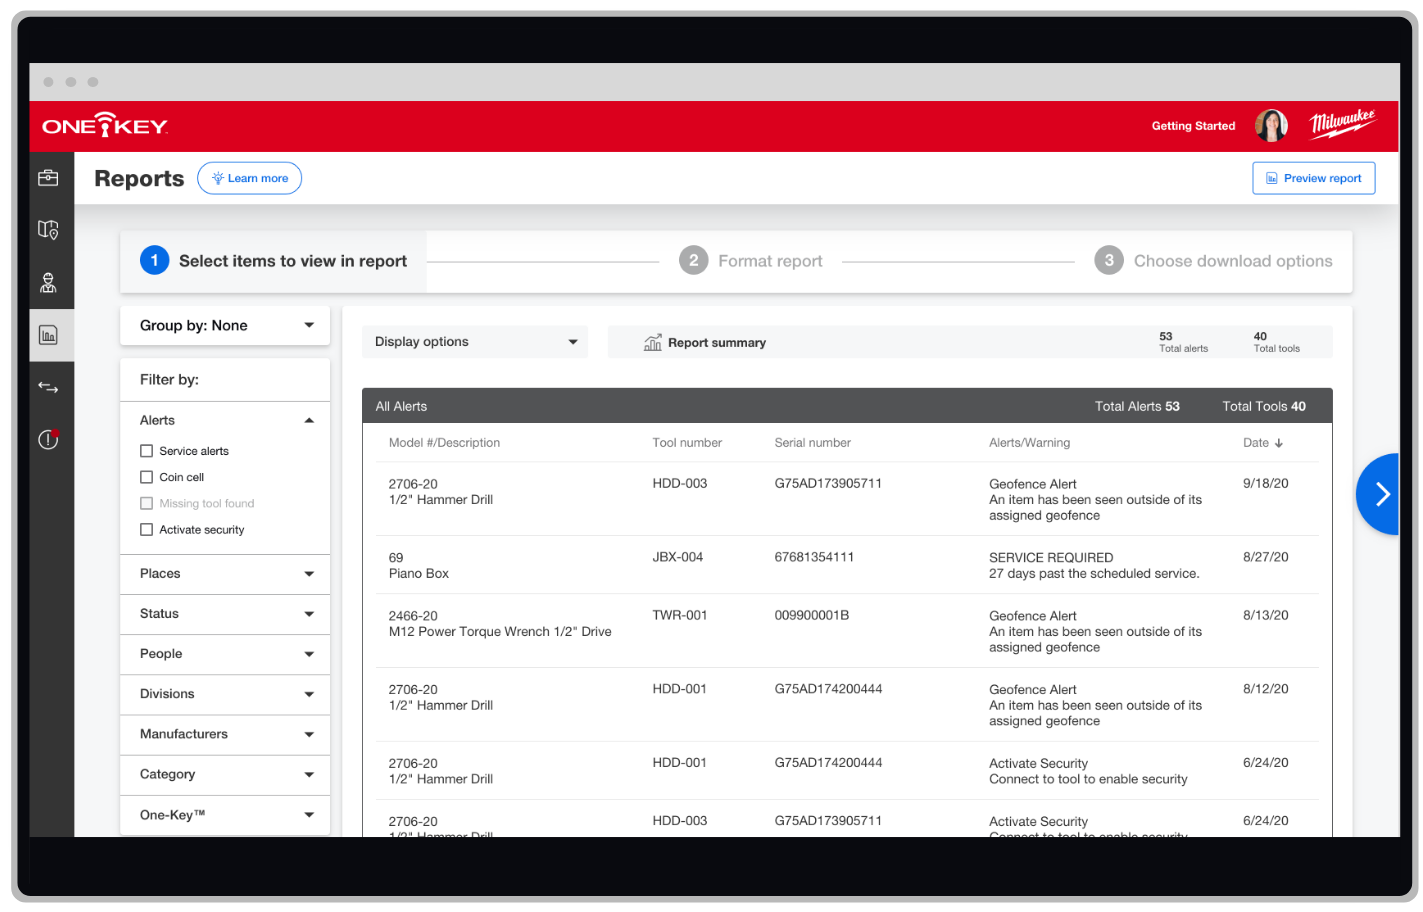 The One-Key enterprise inventory management app generates detailed alerts reports